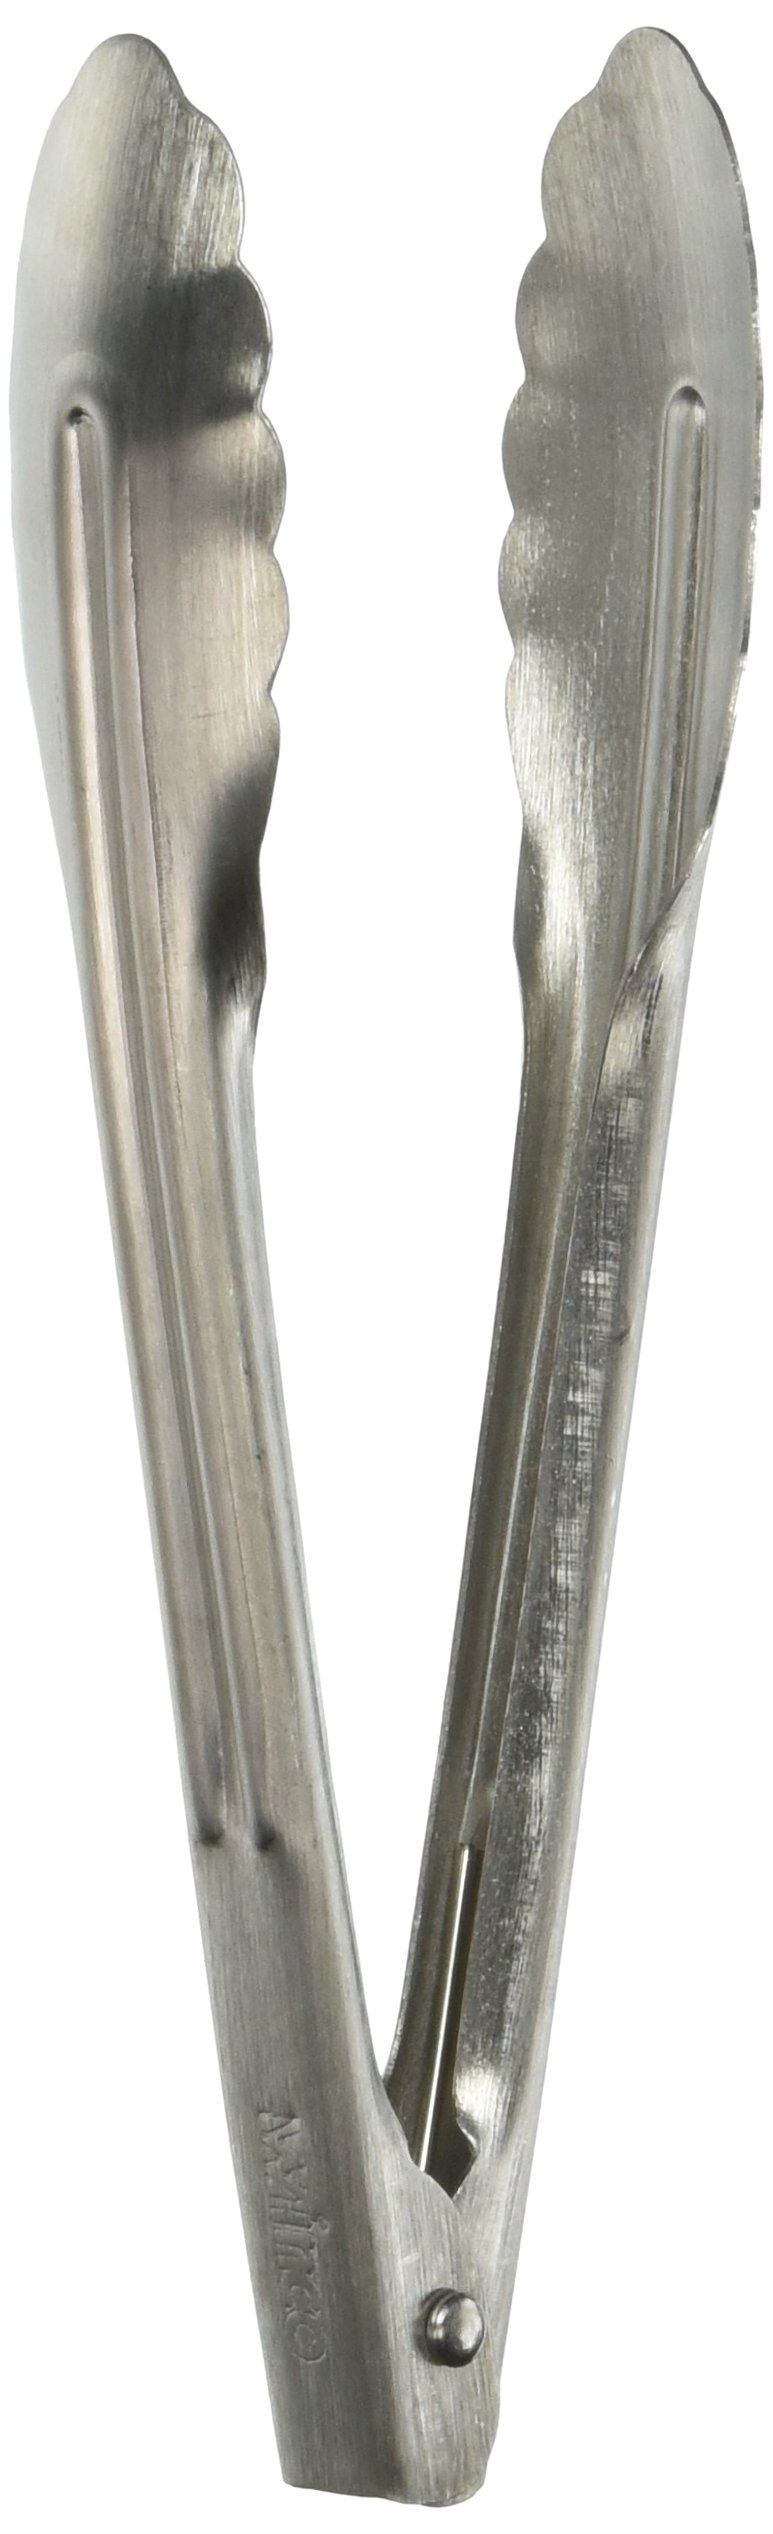 Winco UT-7 Coiled Spring Heavyweight Stainless Steel Utility Tong, 7-Inch